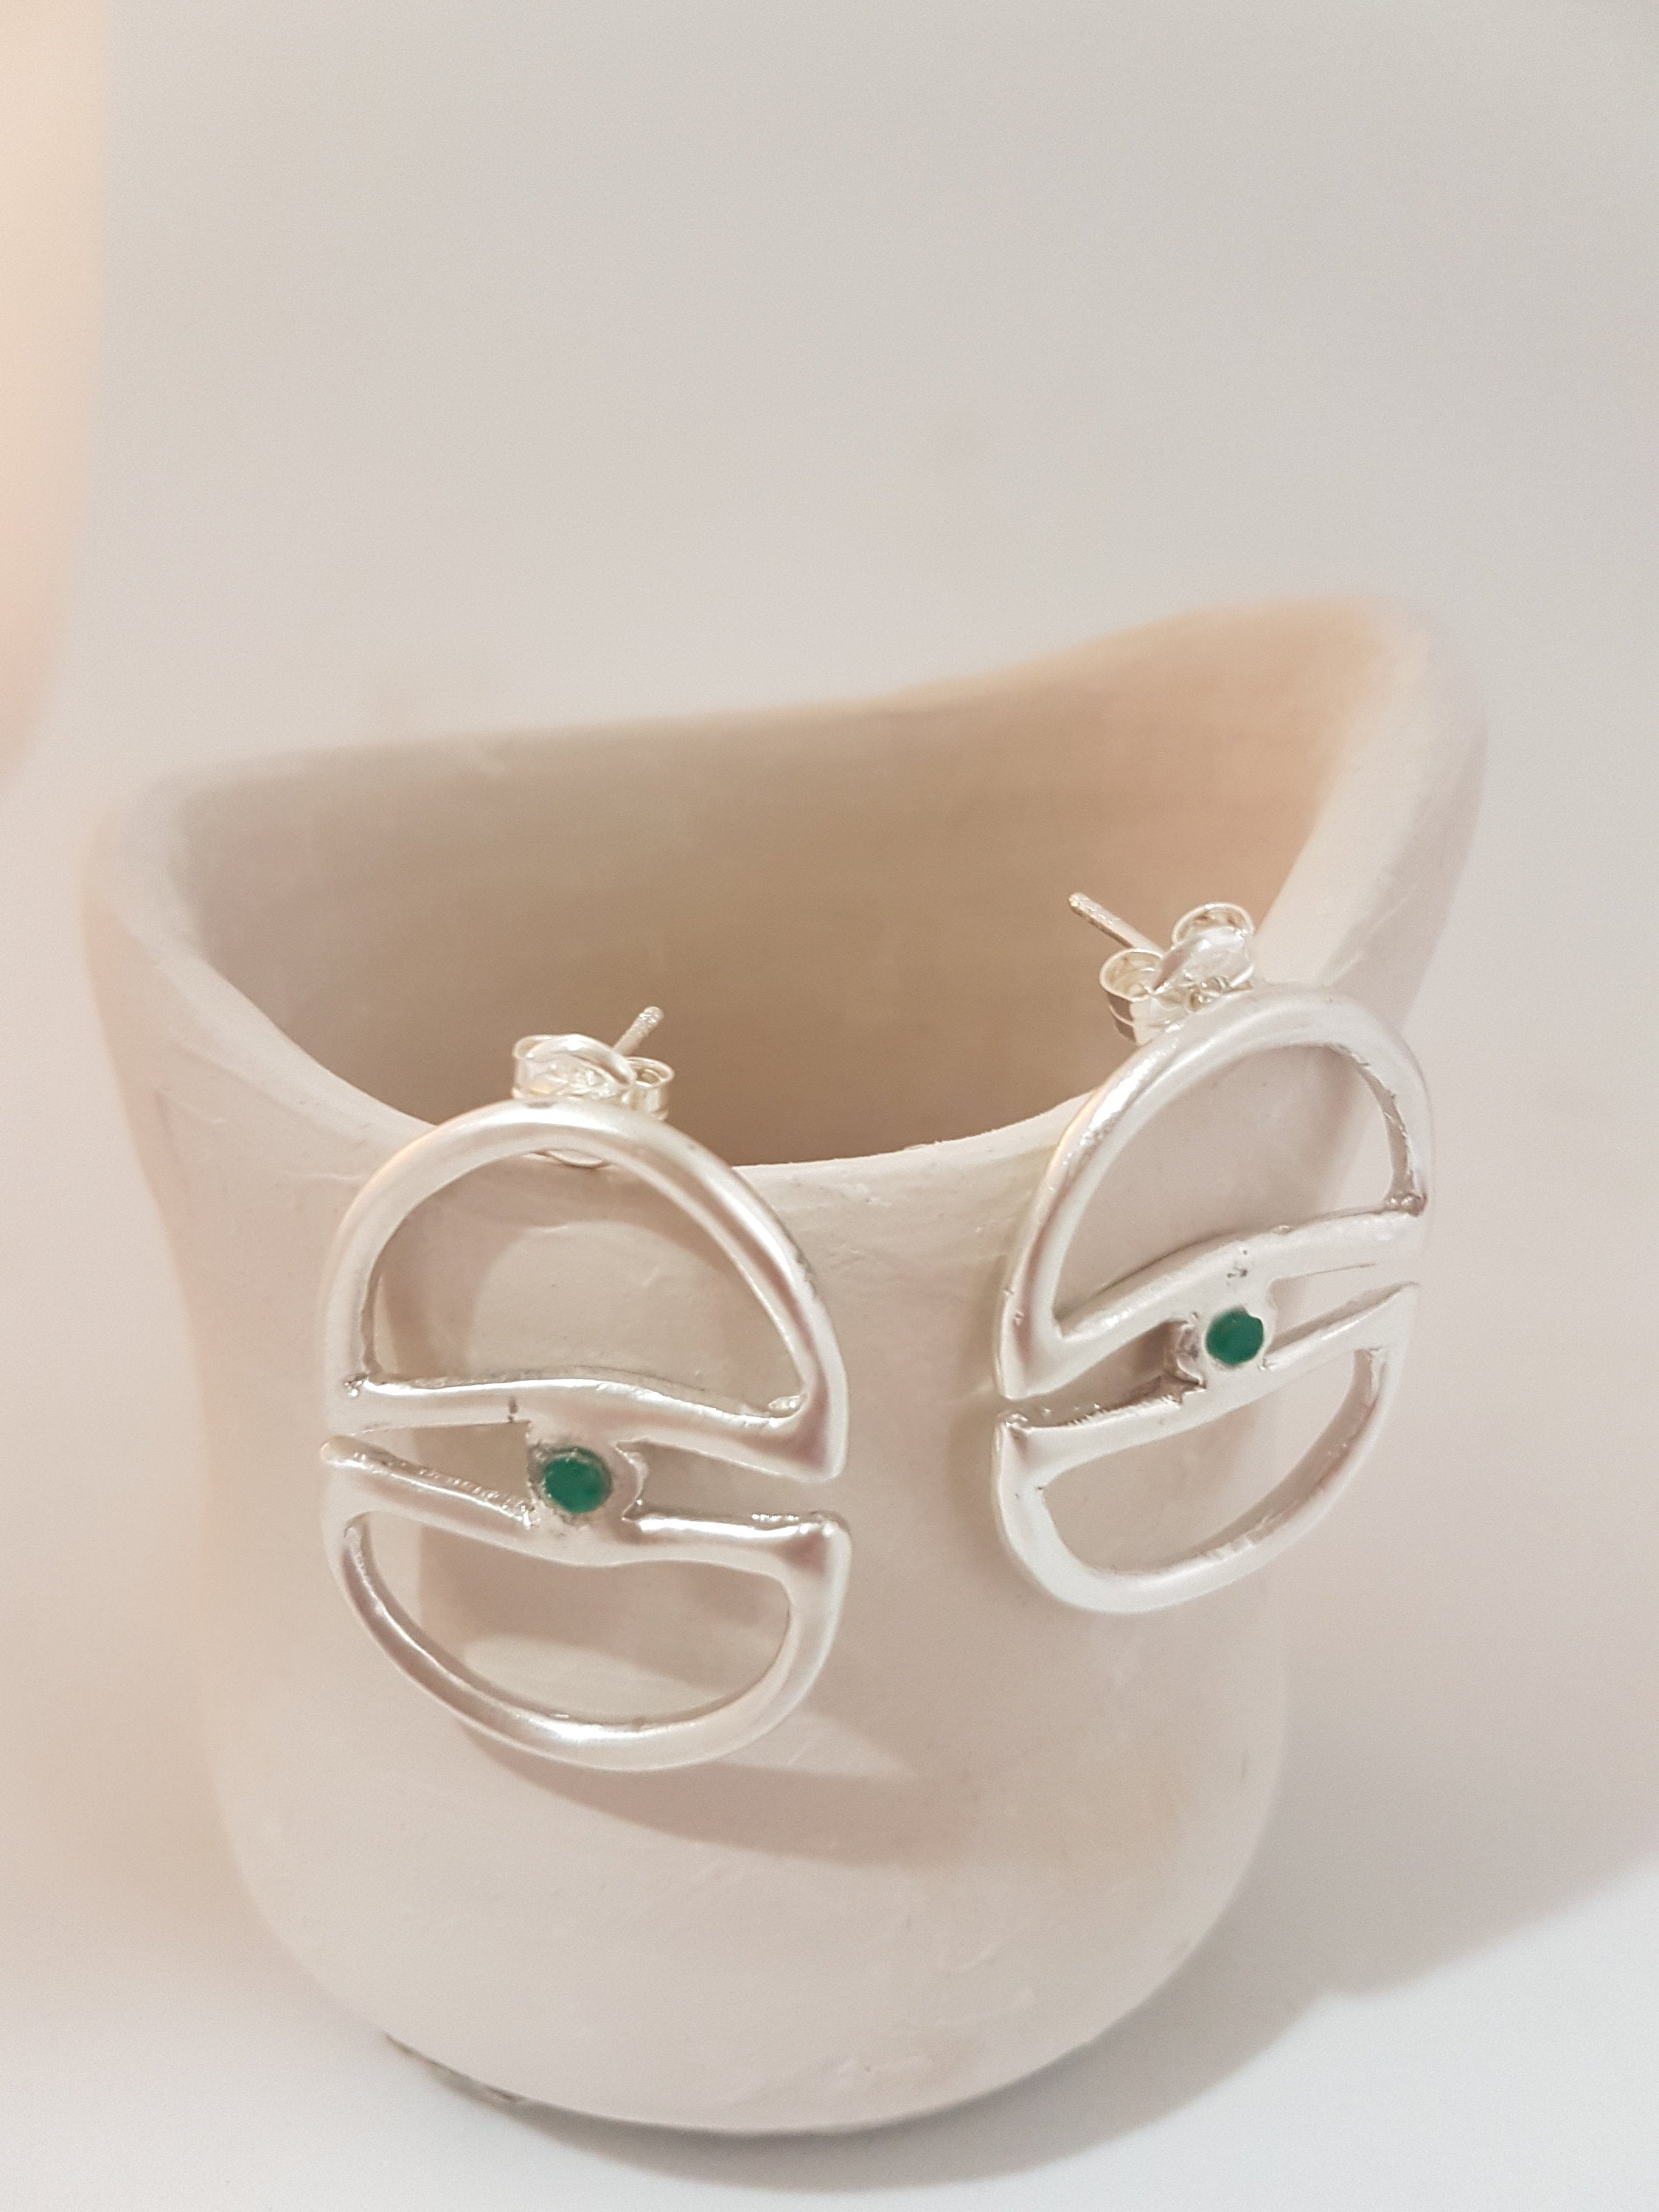 Big bold earrings in sterling silver with emeralds. Artistic statement earrings